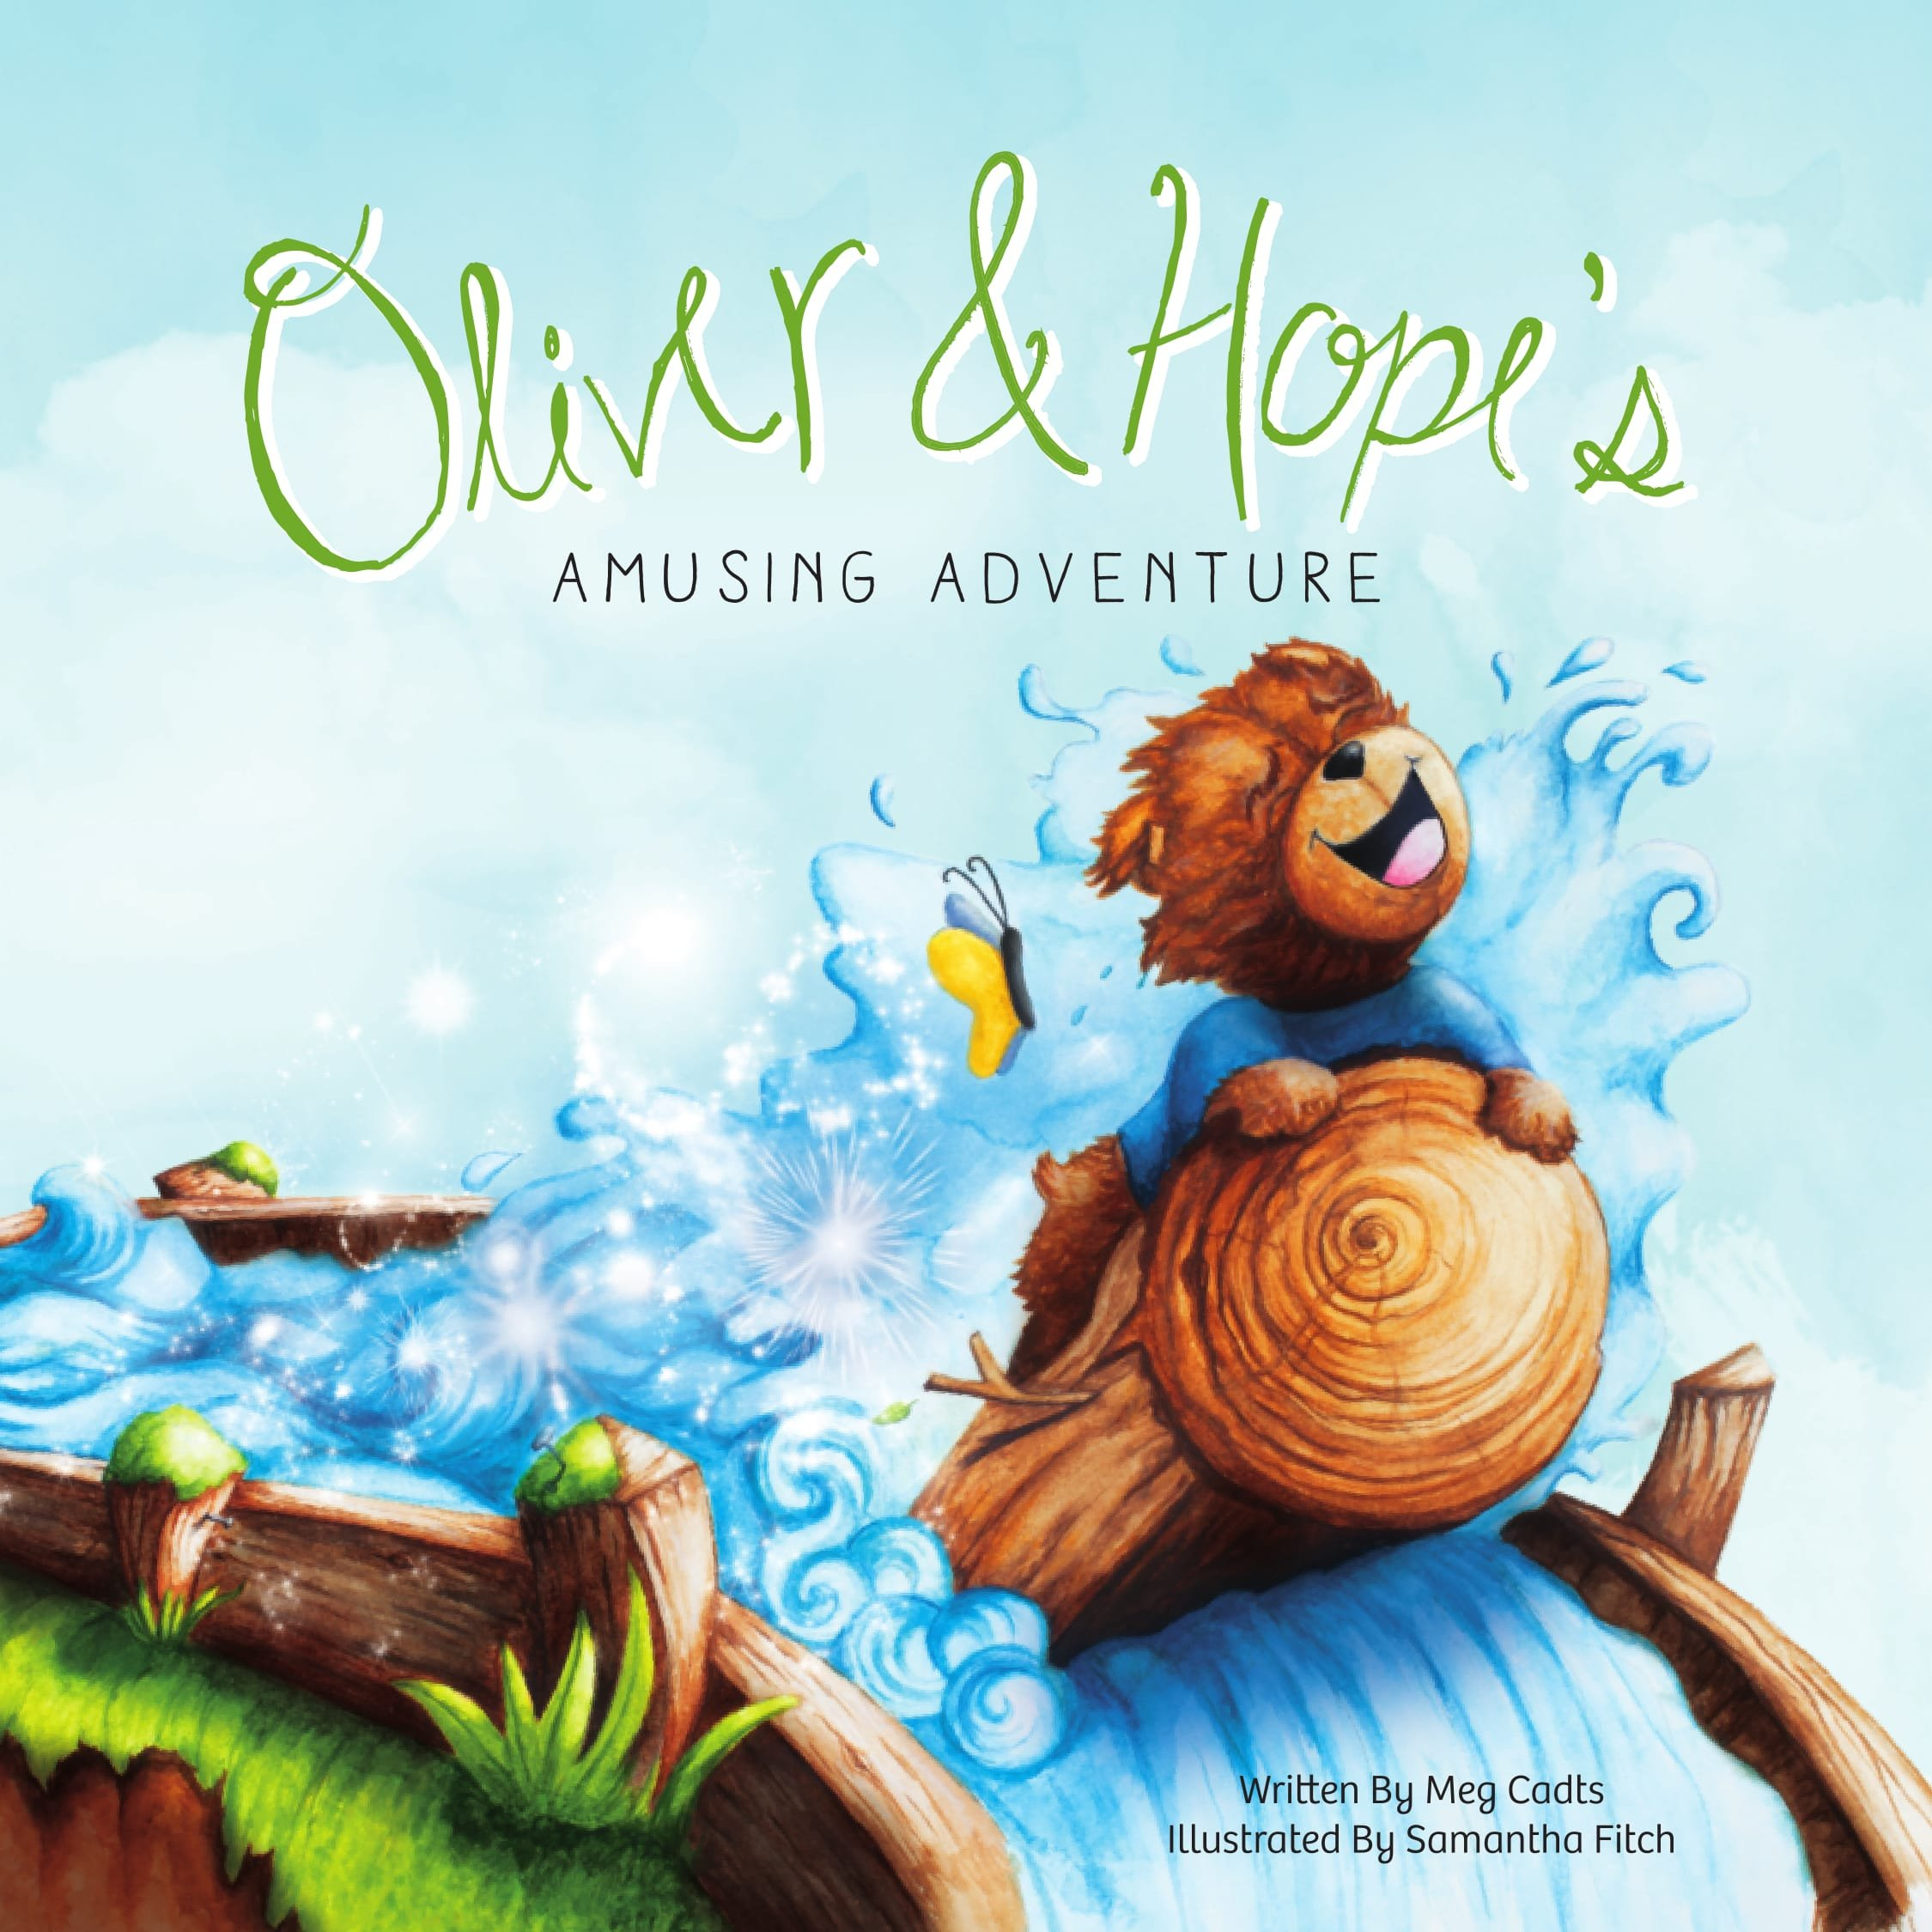 Oliver and Hope's Amusing Adventure (Oliver & Hope) pdf epub